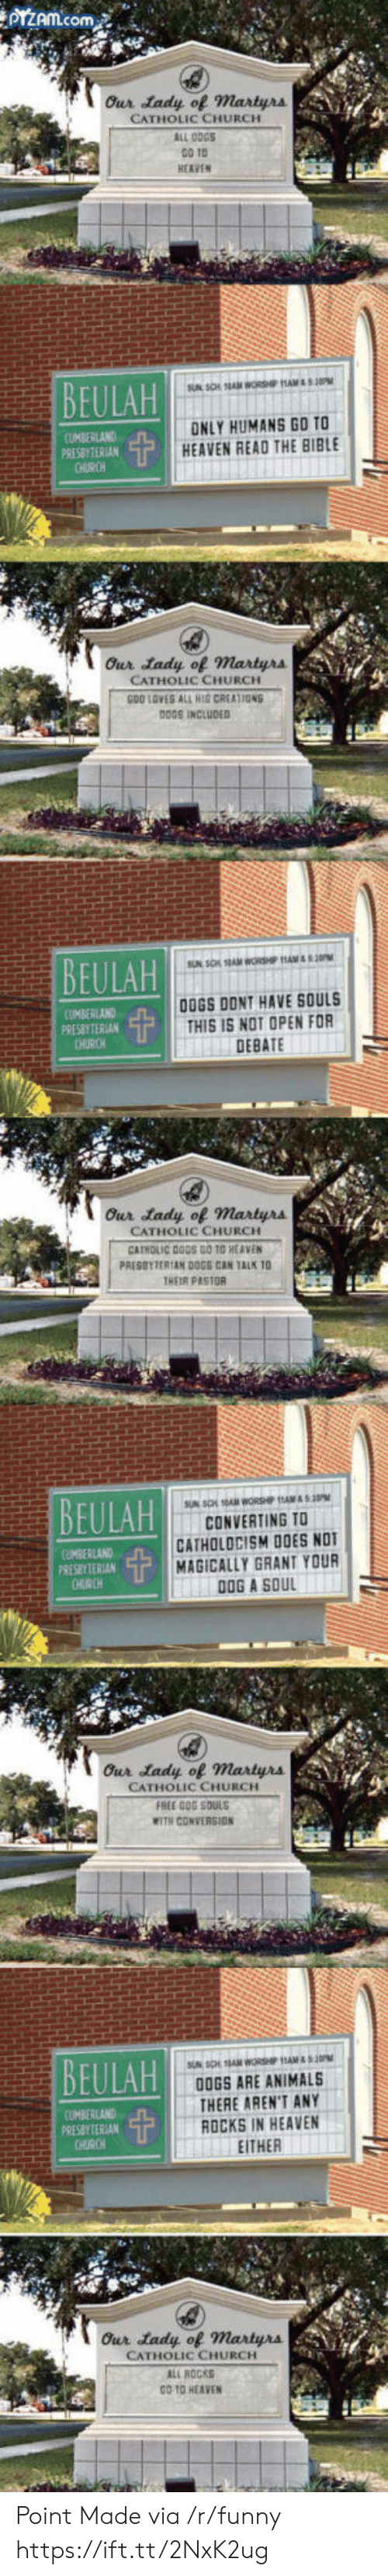 ogs: Our tady of Martyrs  CATHOLIC CHURCH  ALL COGS  GO TD  HEAVEN  EULAR  CUMBERLAND  PRESBYTERIAN  ONLY HUMANS GO TO  HEAVEN READ THE BIBLE  Our tady of martyra  CATHOLIC CHURCH  GOD LOVES ALL HIG CREATION  DDDS INCLUDED  UMBERLAND  PRESBYTERIAN  CHURCH  00GS DONT HAVE SOULS  THIS IS NOT OPEN FOR  DEBATE  Our tady of Martyrs  CATHOLIC CHURCH  HEIR PASTOR  CONVERTING TO  CATHOLOCISM DOES NOT  MAGICALLY GRANT YOUR  DOG A SOUL  UMBERLAND  PRESEYTERIAN  CATHOLIC CHURCH  FREE DOG SQULS  WITH CONVERSION  BEULAH  OGS ARE ANIMALS  THERE AREN'T ANY  ROCKS IN HEAVEN  EITHER  (UMBERLAND  PRESBY TERIAN  HURCH  Our tady of Martyrs  CATHOLIC CHURCH  ALL ROCKS  O TO HEAVEN Point Made via /r/funny https://ift.tt/2NxK2ug